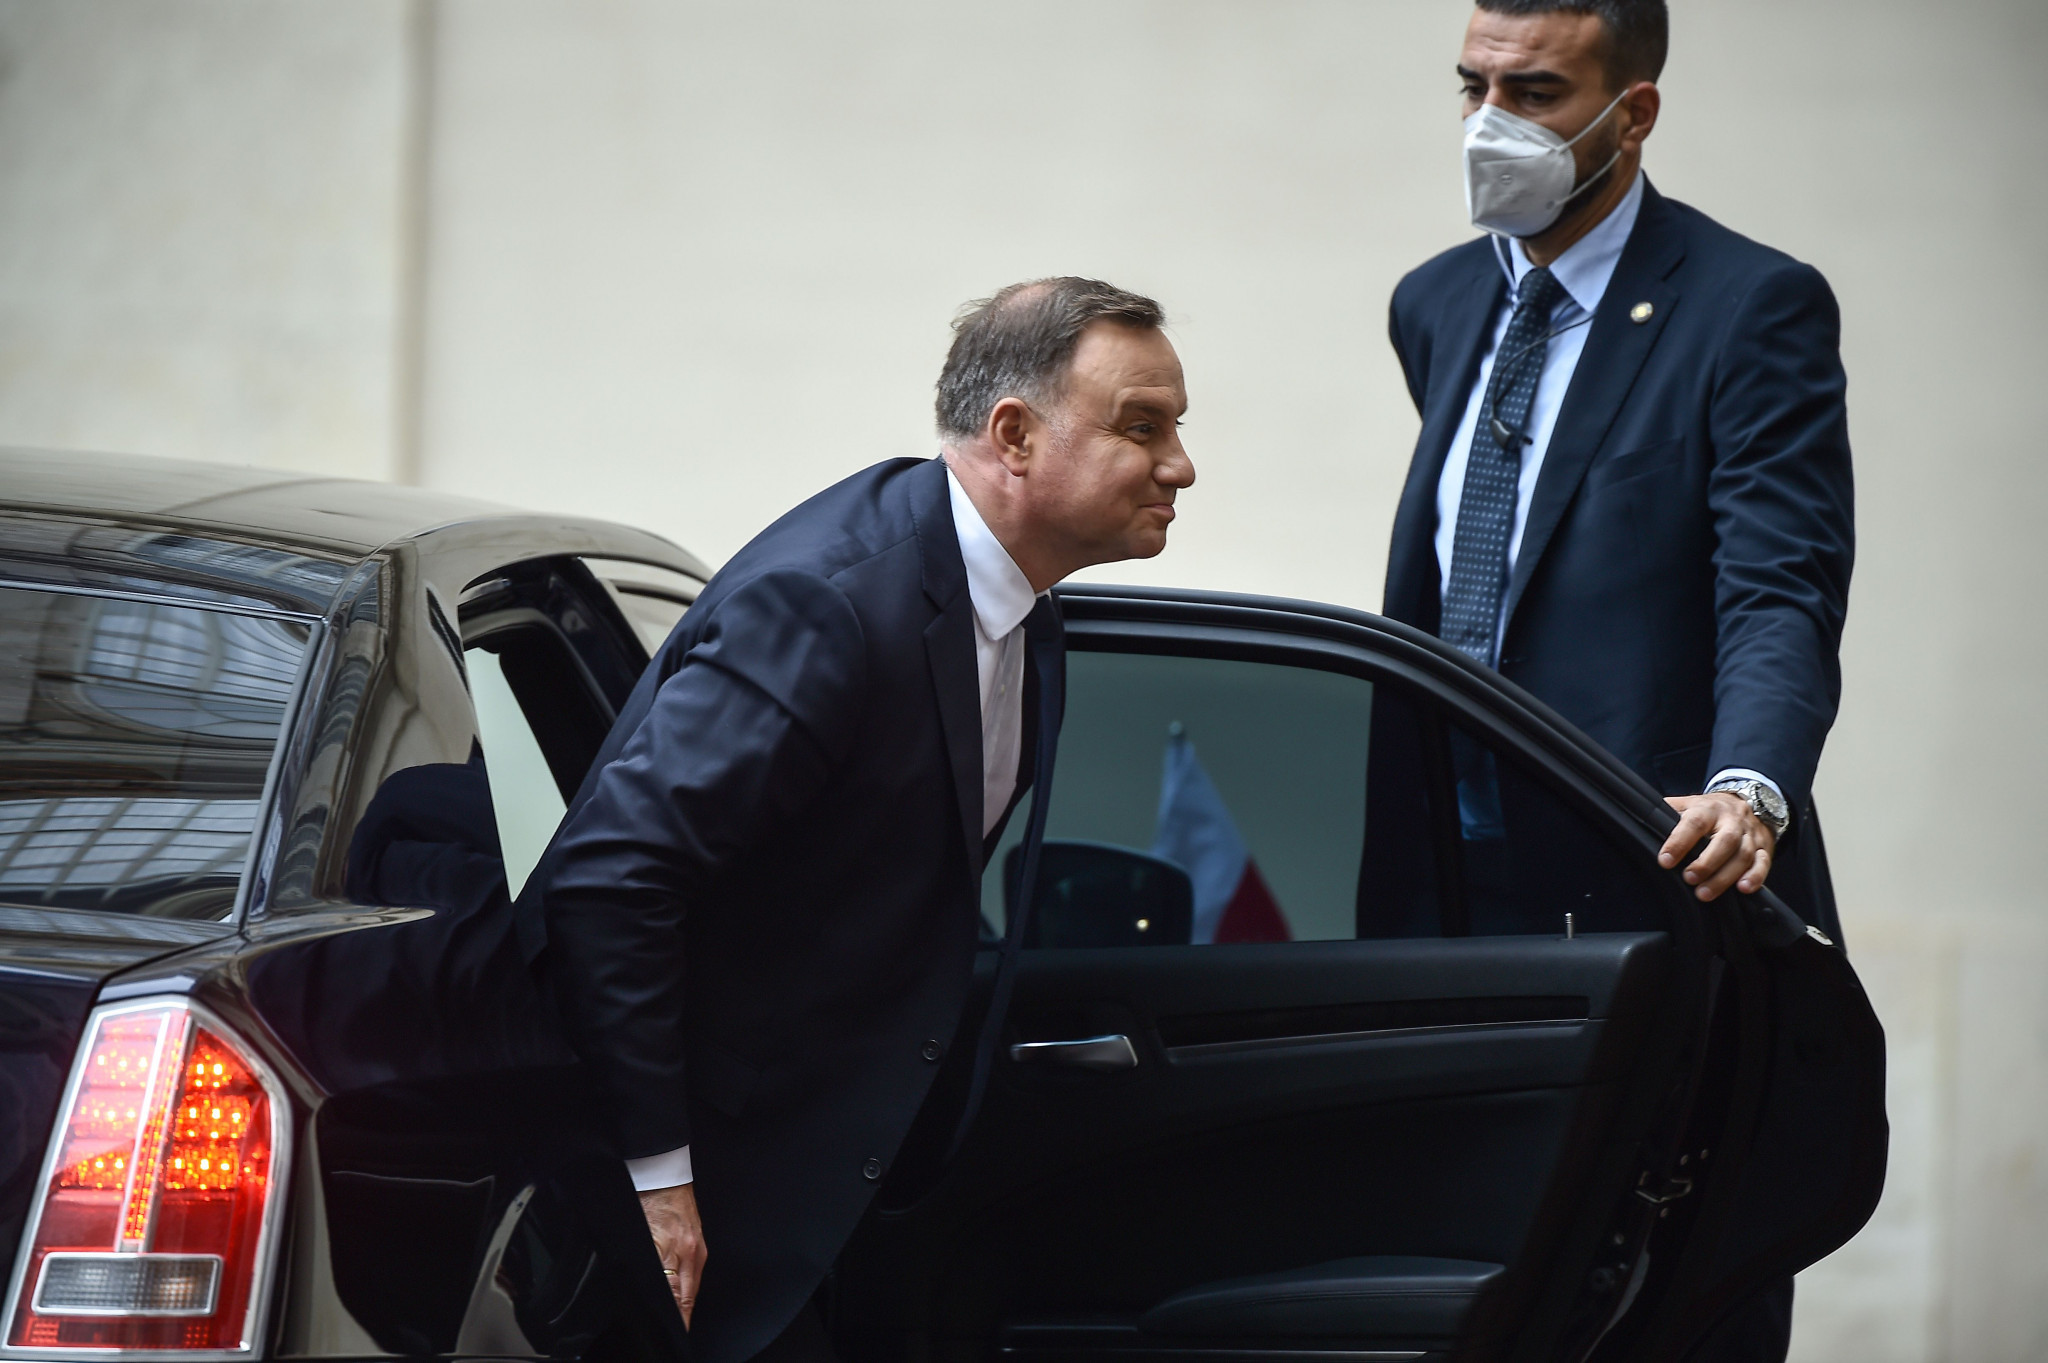 """Poland President Andrzej Duda has said there could be ideological differences with Joe Biden's """"left-liberal"""" party ©Getty Images"""